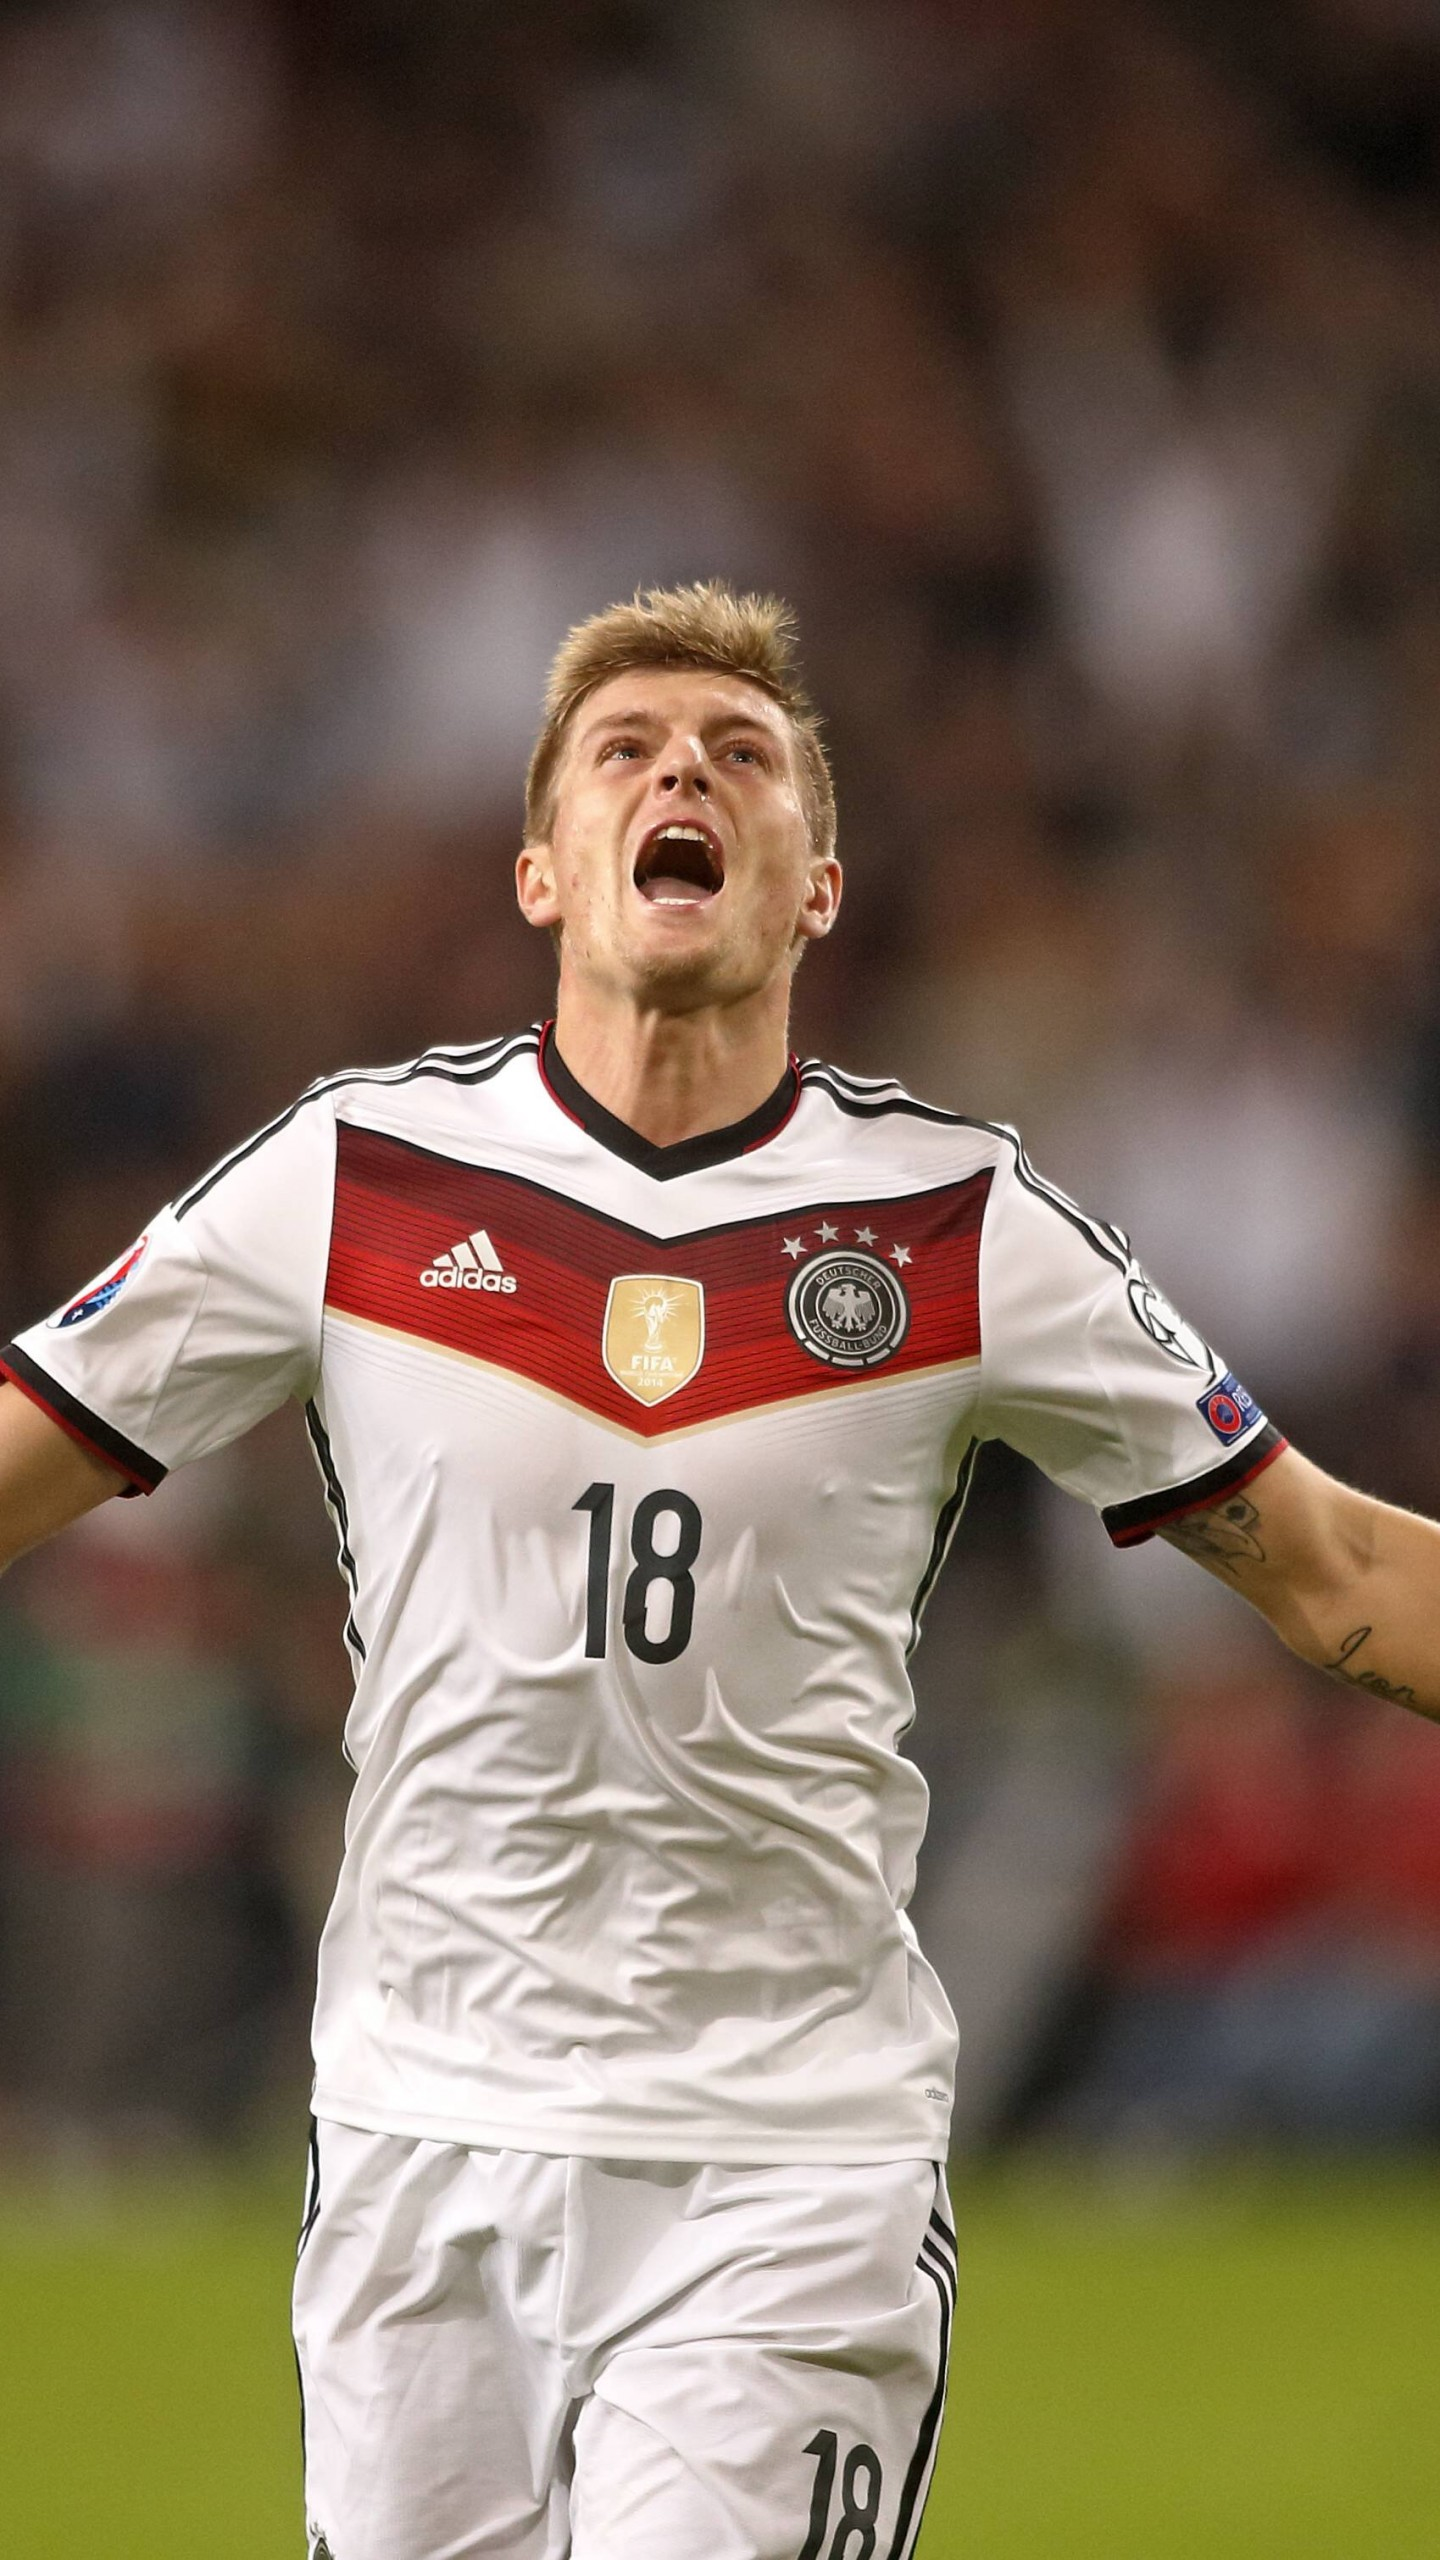 Facebook Wallpaper Quotes From Soccer Players Wallpaper Football Toni Kroos Soccer The Best Players